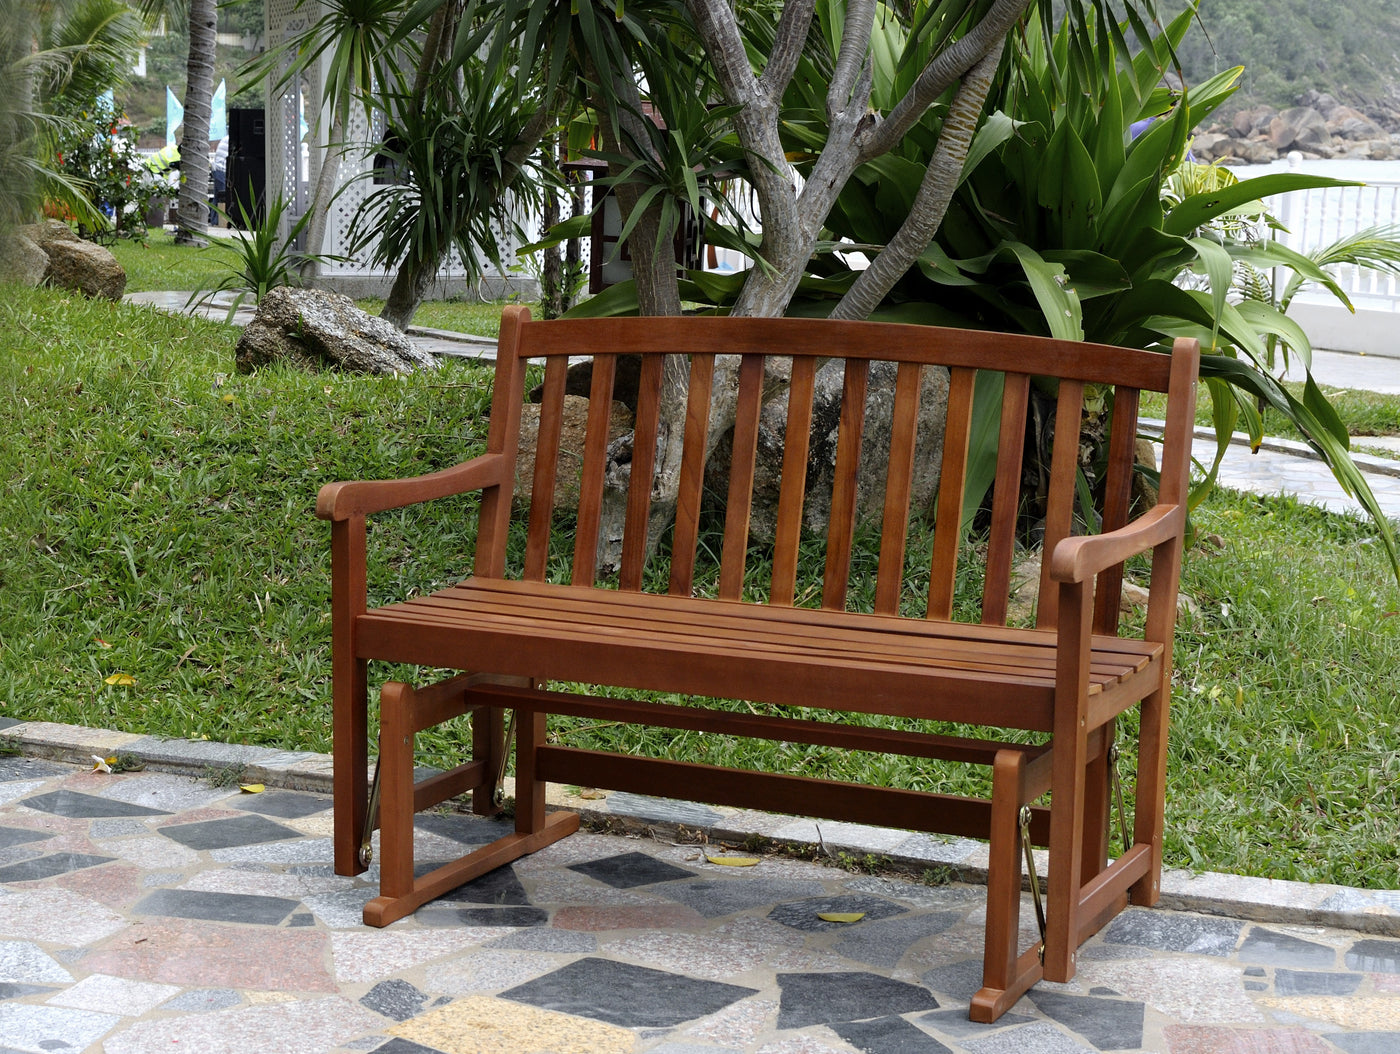 Prime Outdoor 2 Person Patio Furniture Acacia Hardwood Garden Glider Bench Gmtry Best Dining Table And Chair Ideas Images Gmtryco